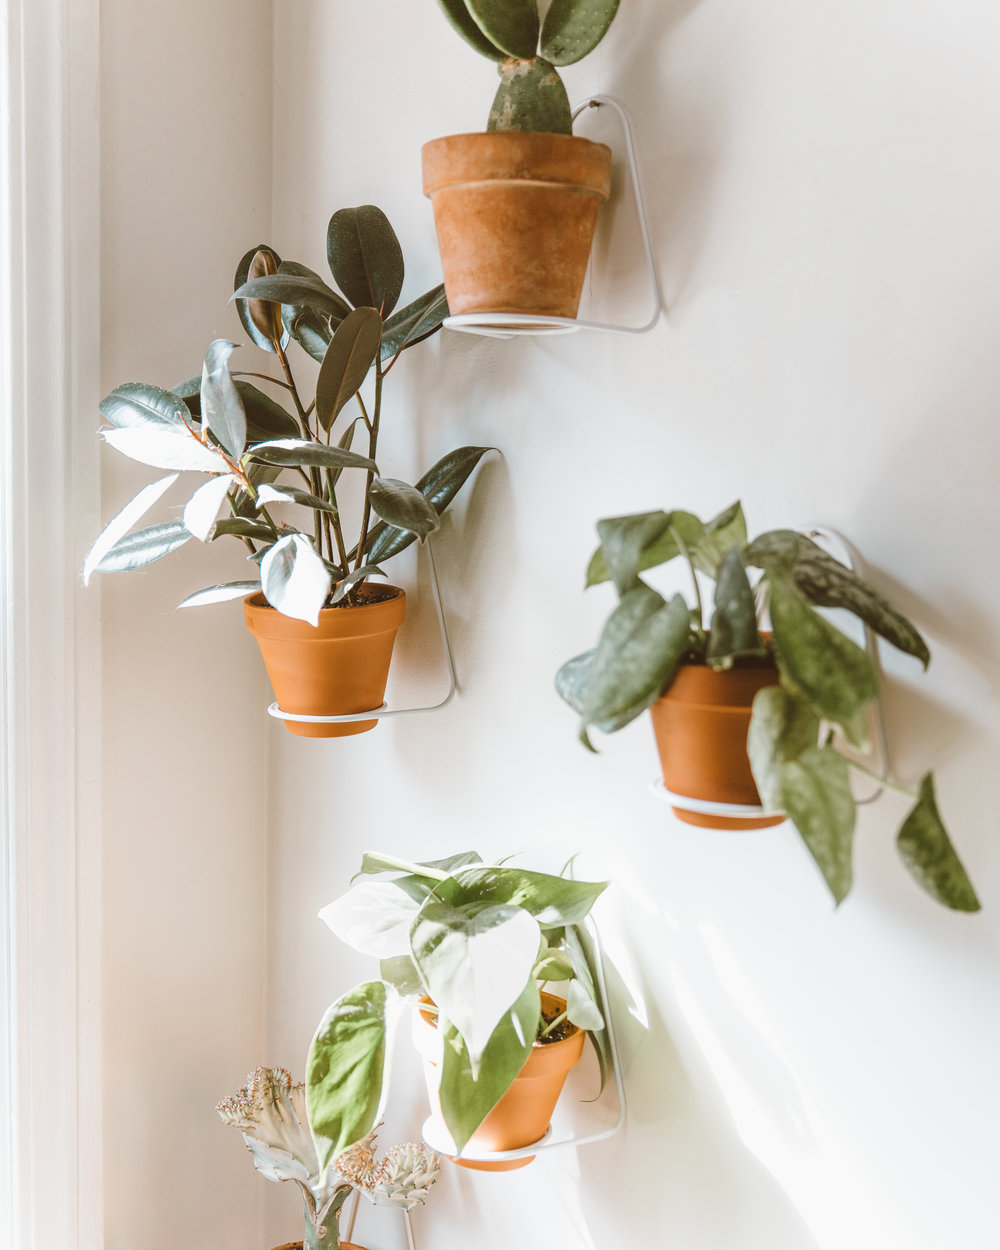 _forthehome-how-to-living-wall-01.jpg